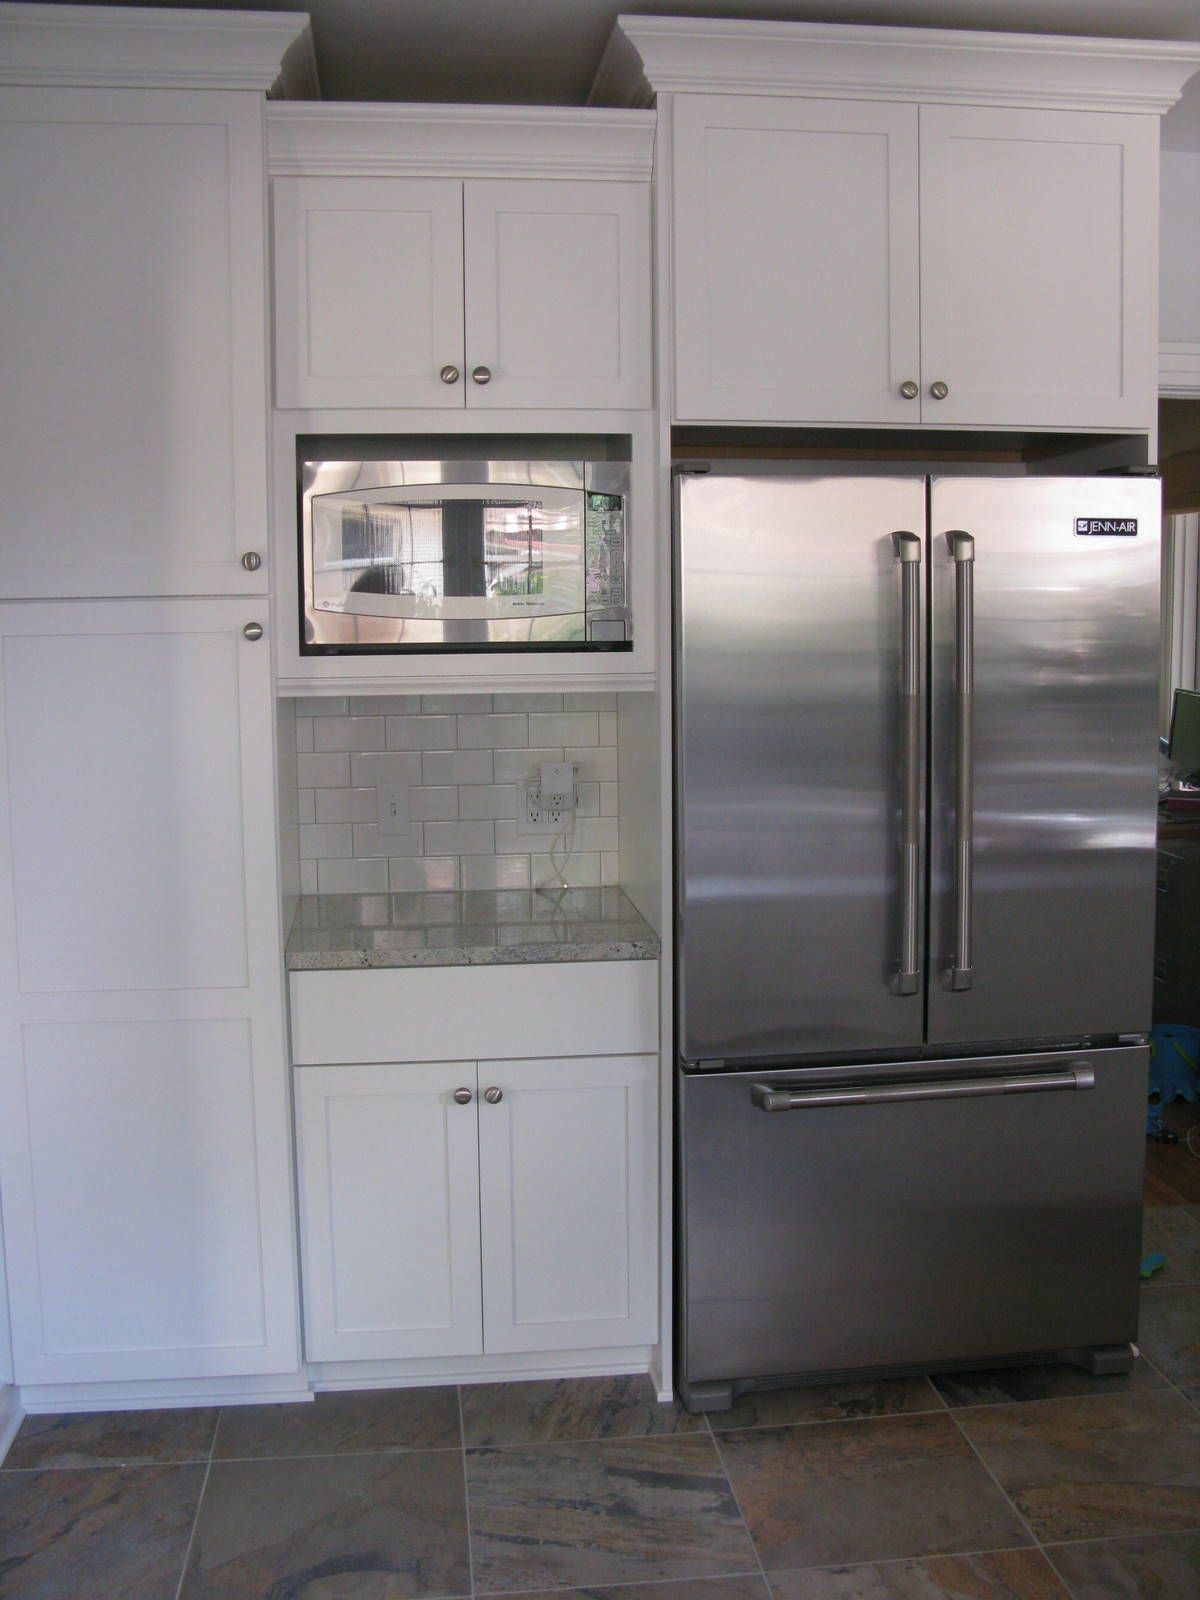 Microwave in upper cabinet  Kitchen wall removalremodel